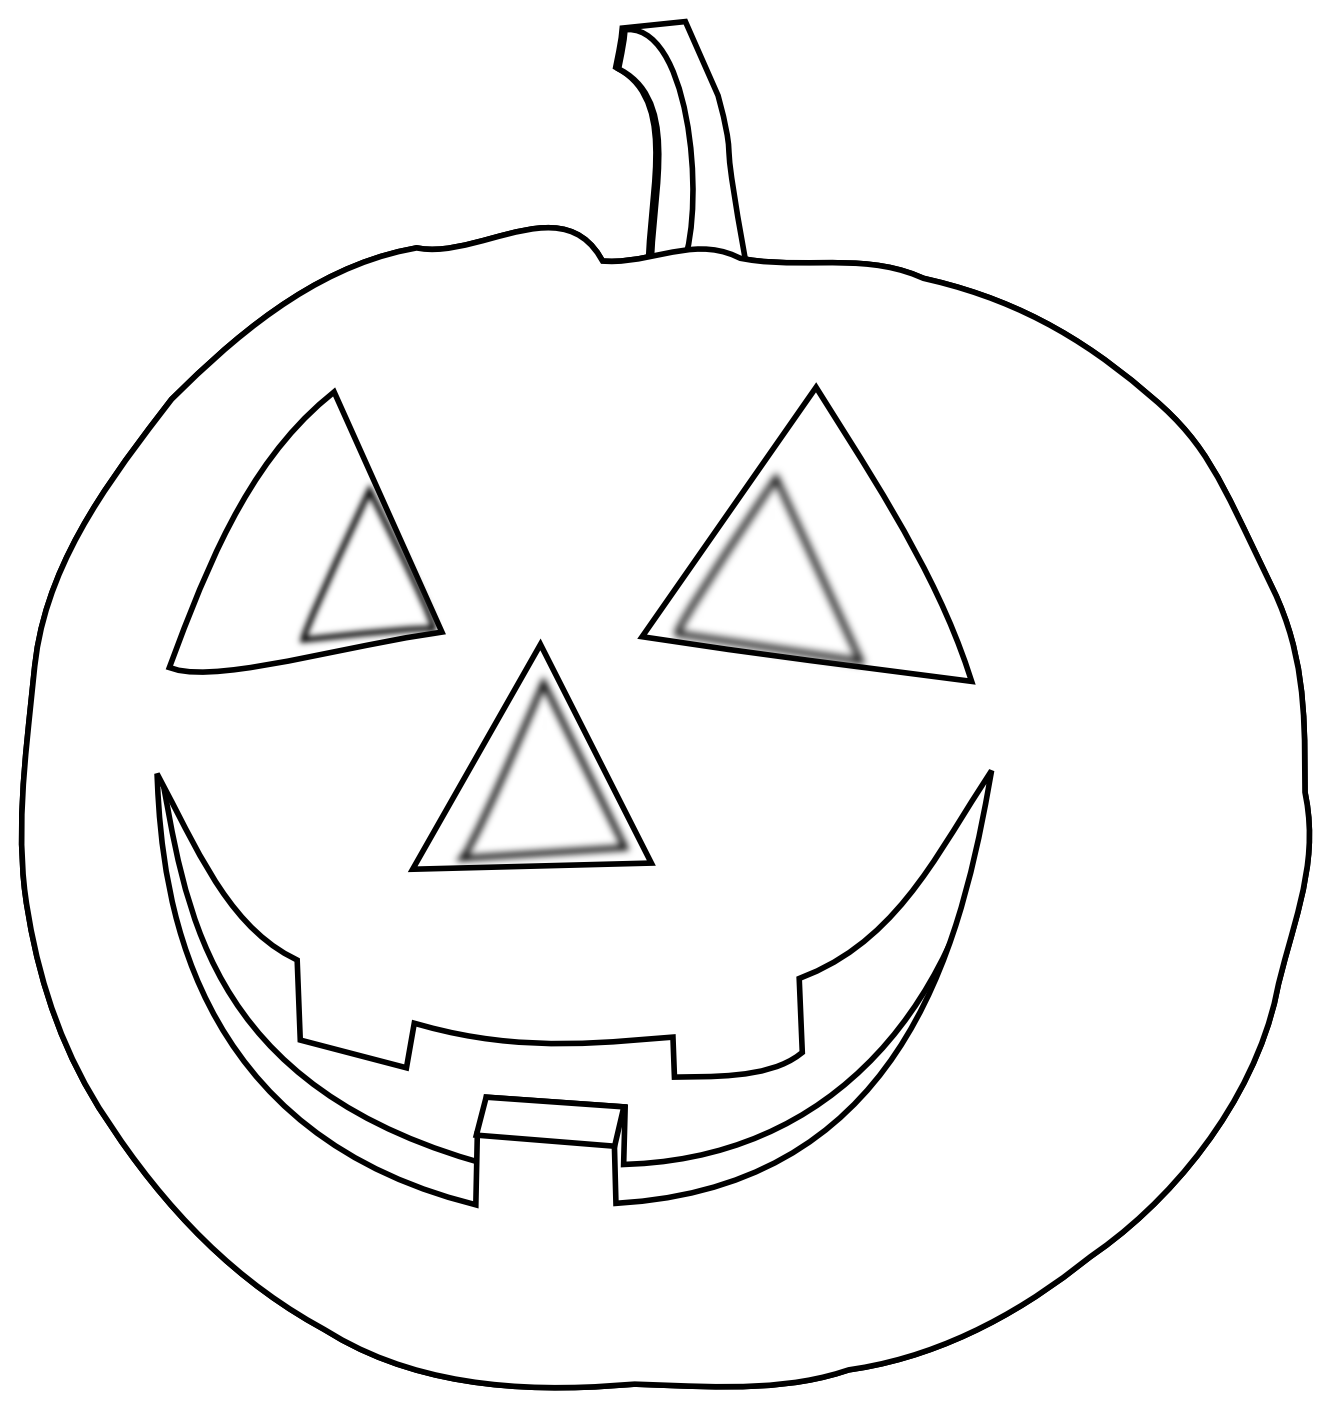 coloring clipart halloween black and white halloween clipart black and white clipart panda free and halloween coloring clipart black white